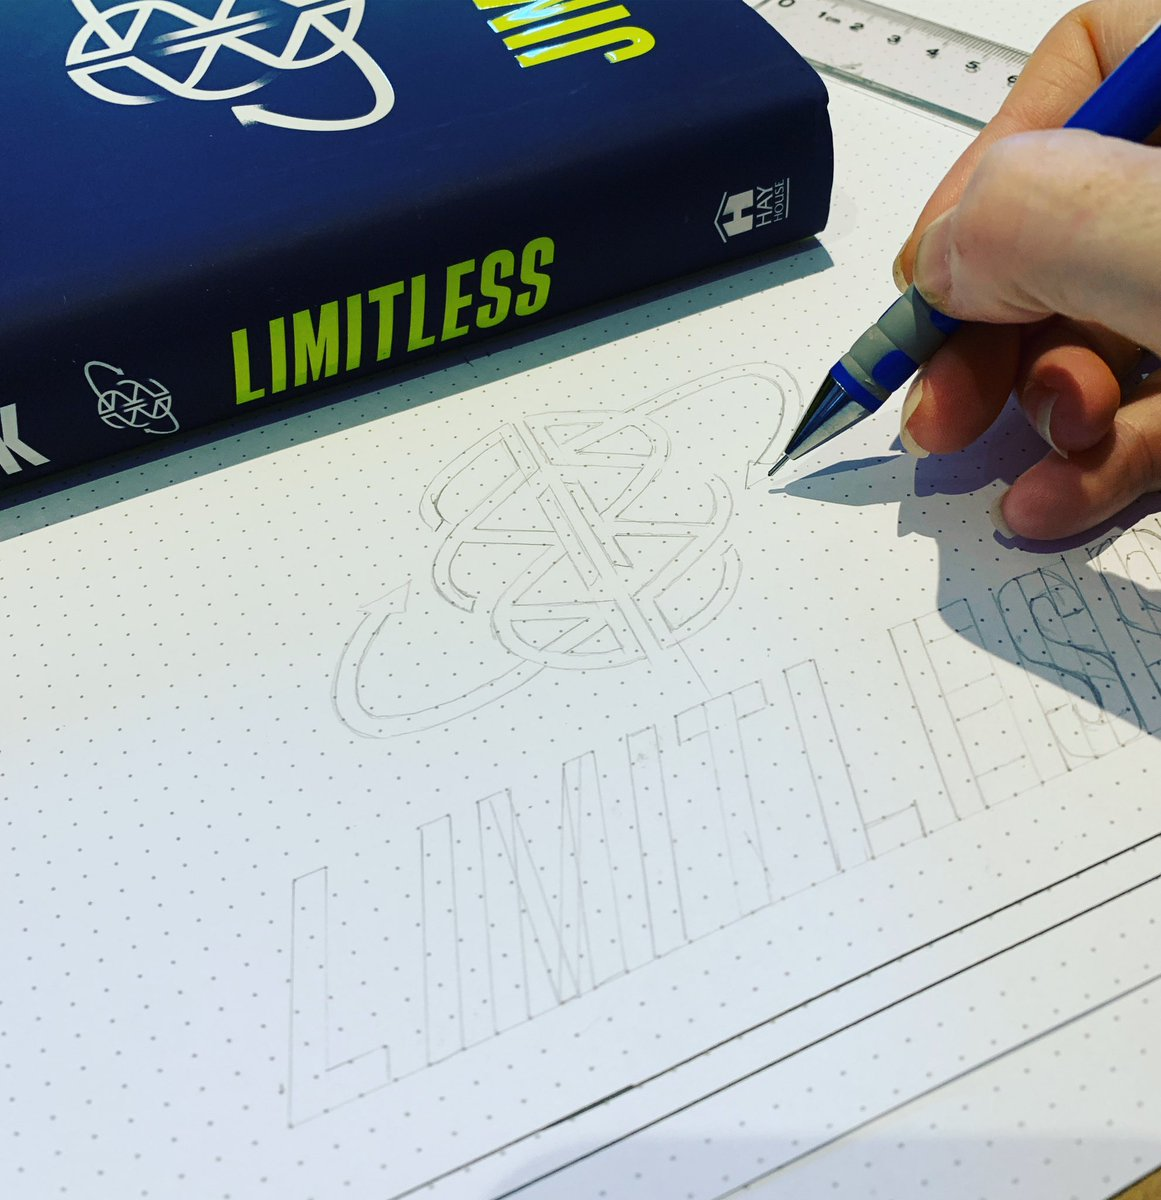 Replying to @DaniSaveker: #limitless by @jimkwik as a #visualsynopsis. Creating one page to capture the contents visually